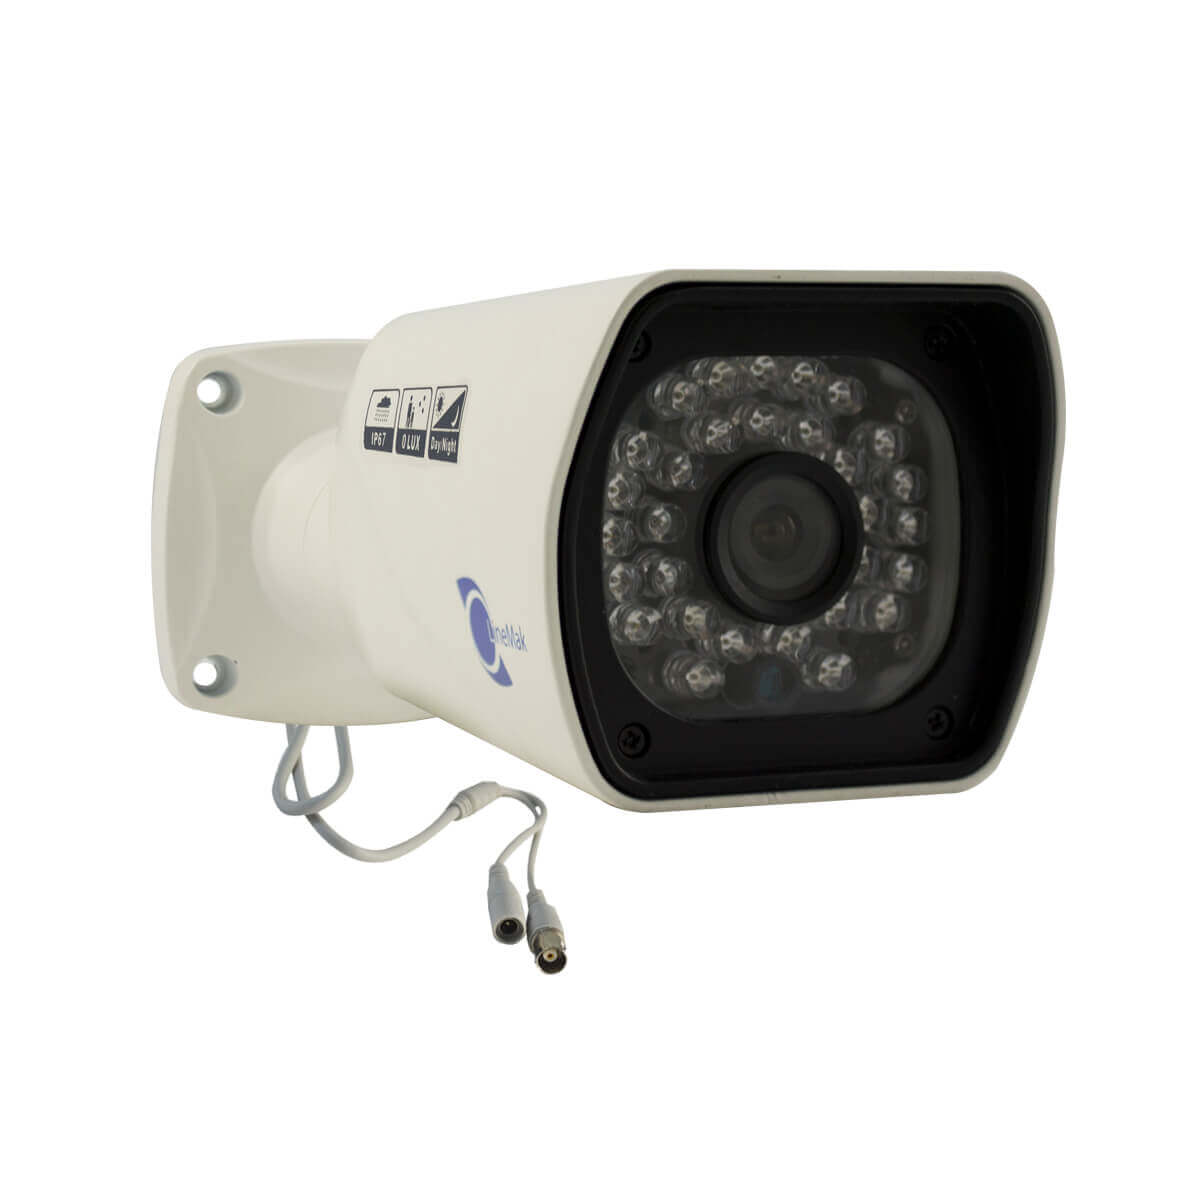 Camara tipo bazuca, HD digital 1/4, 700TVL, 24 LEDs, 20m~25m IR, IP67